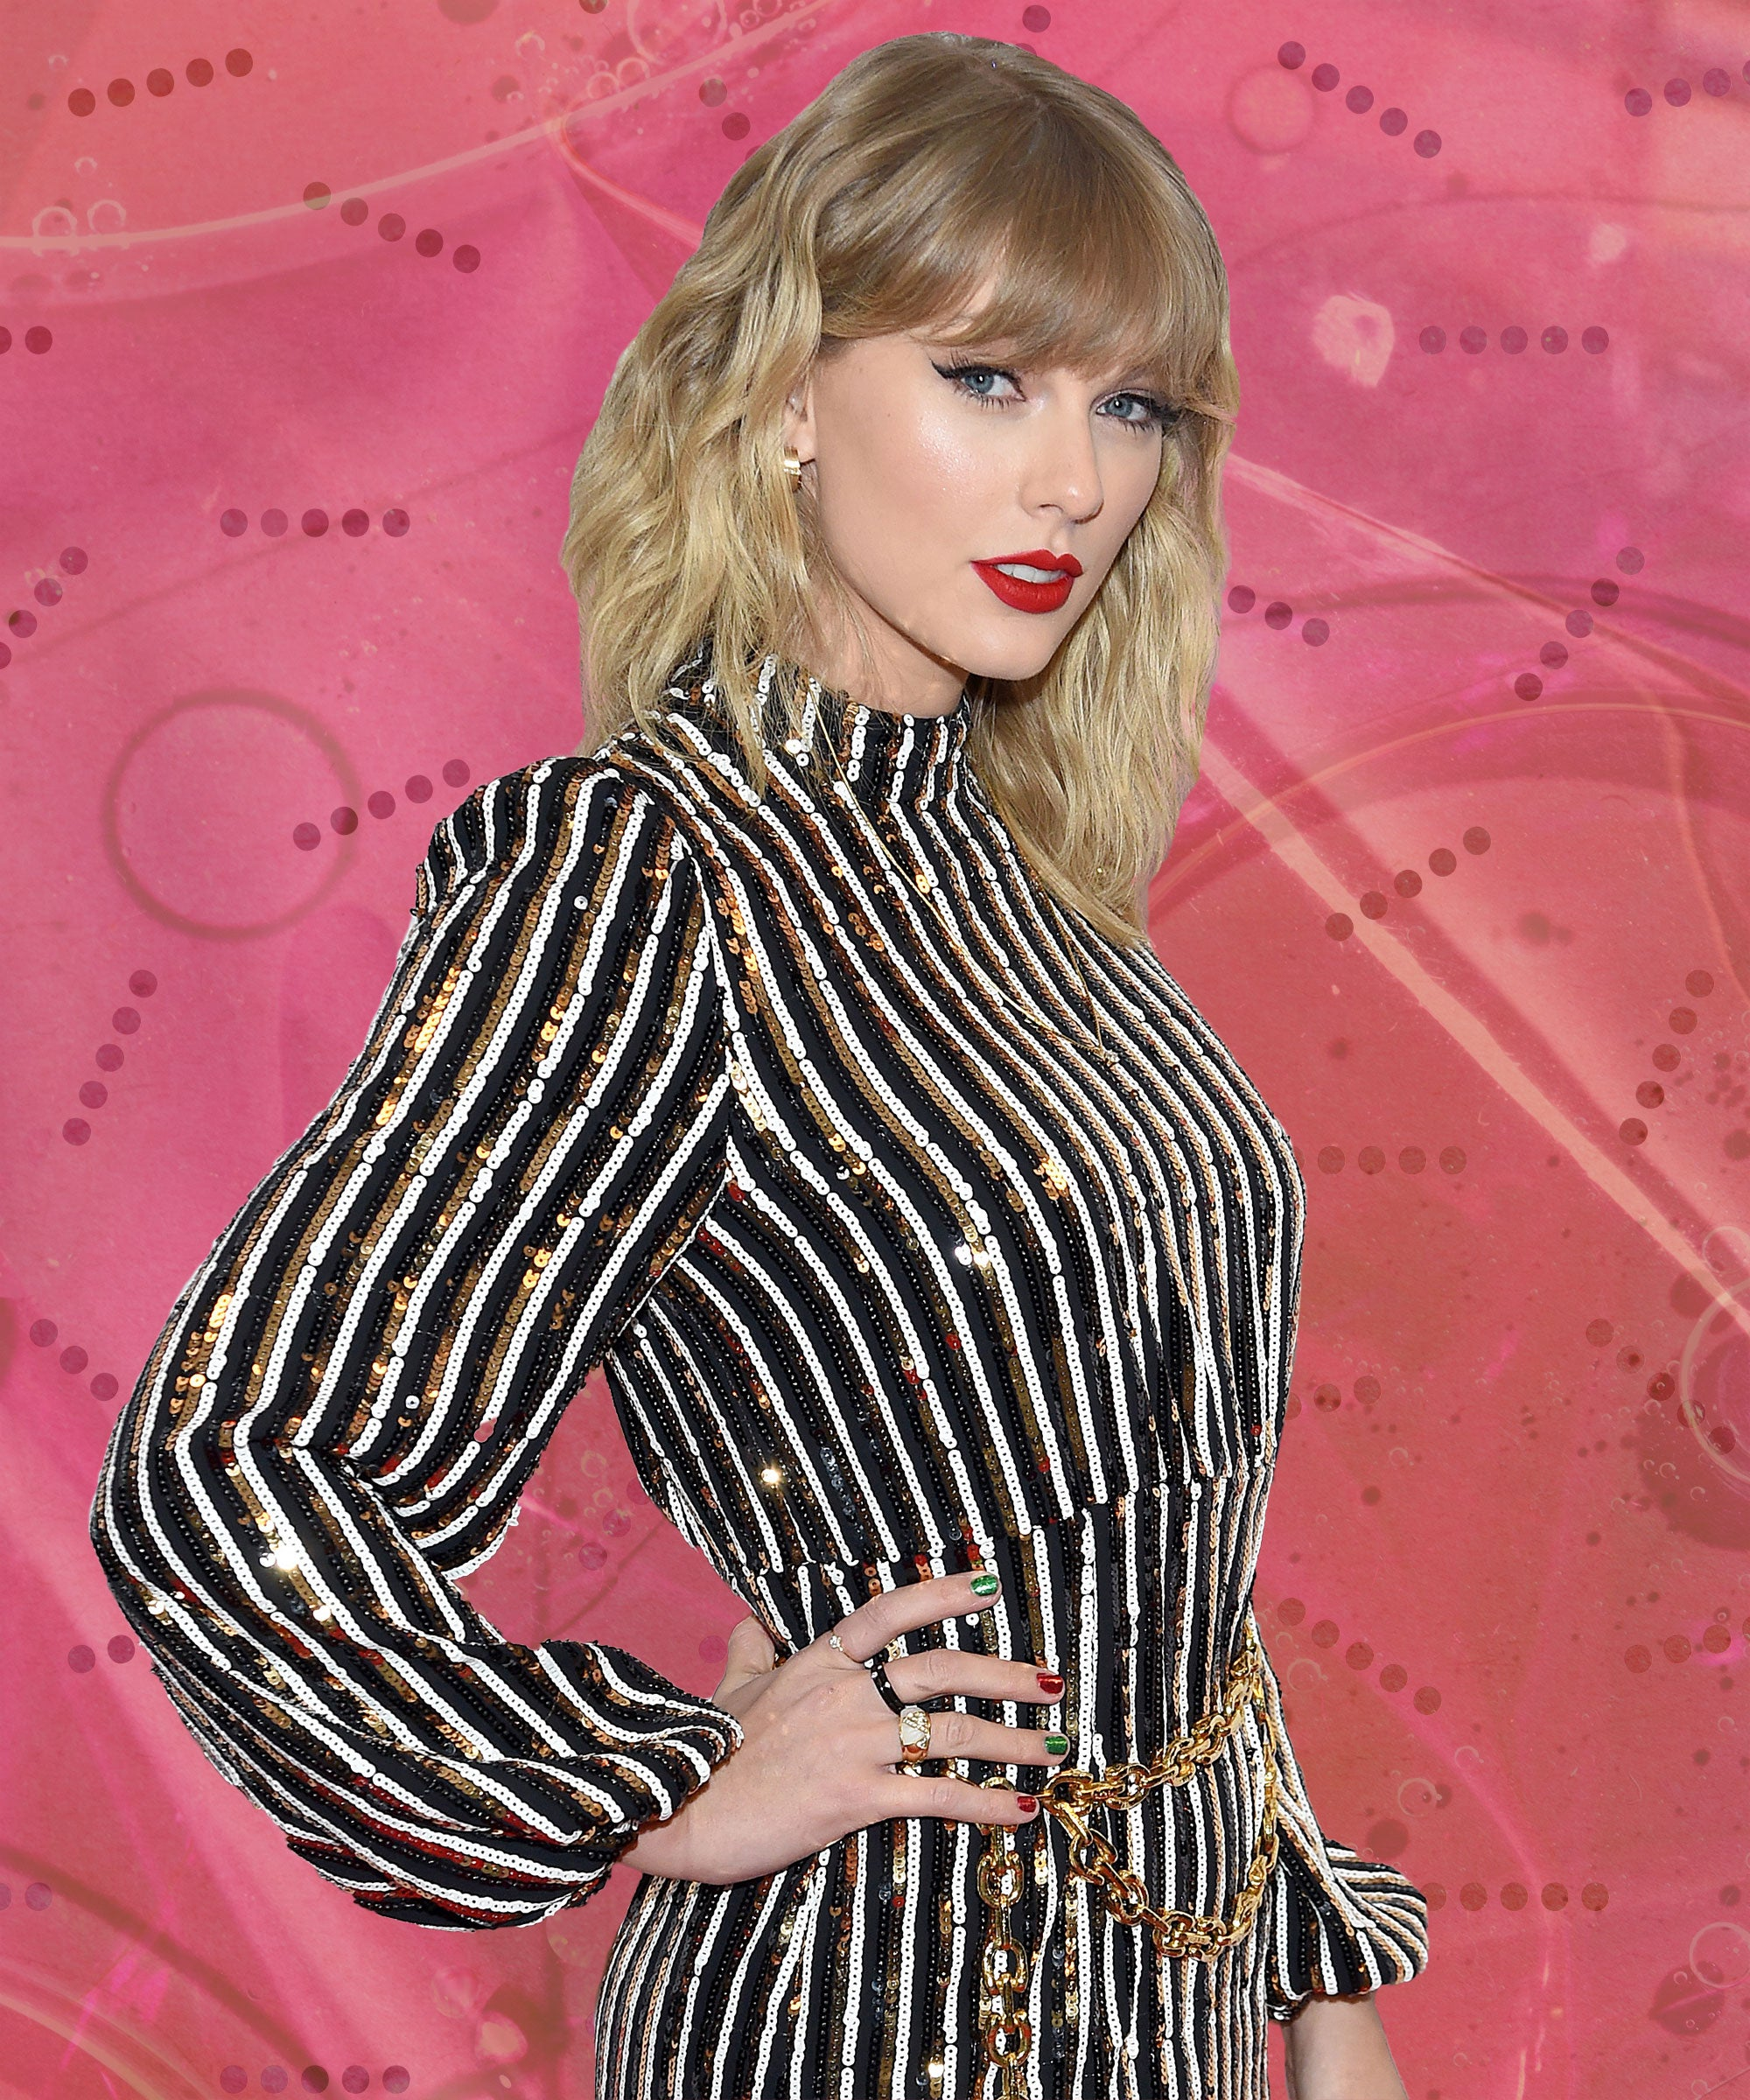 Taylor Swift Rings In 30 With Two Cats-Worthy Birthday Cakes